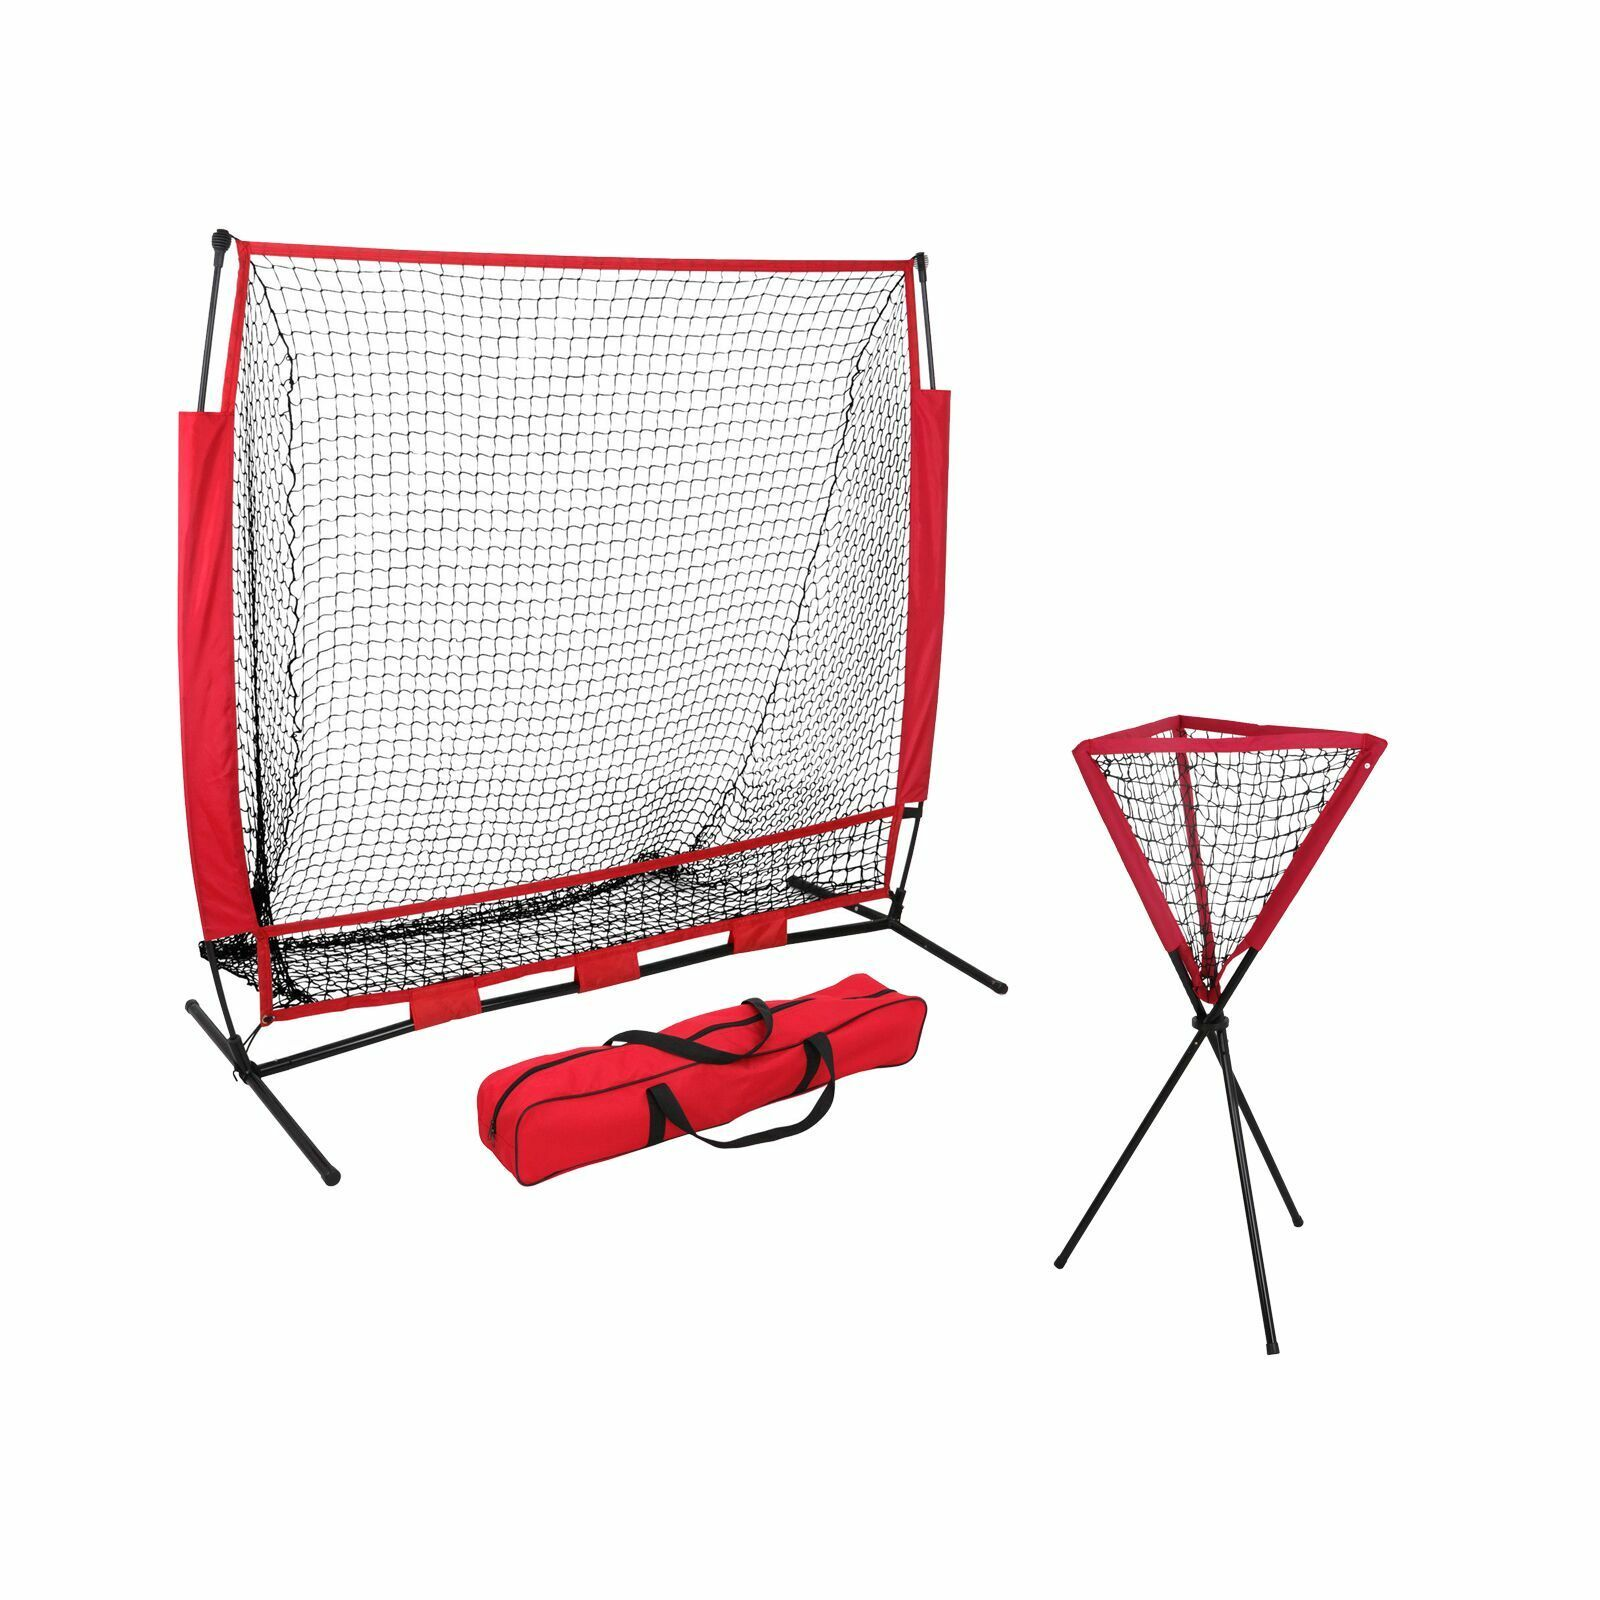 5x5 FT Portable Baseball Practice Hitting Training Net w  Bag +  Ball Caddy